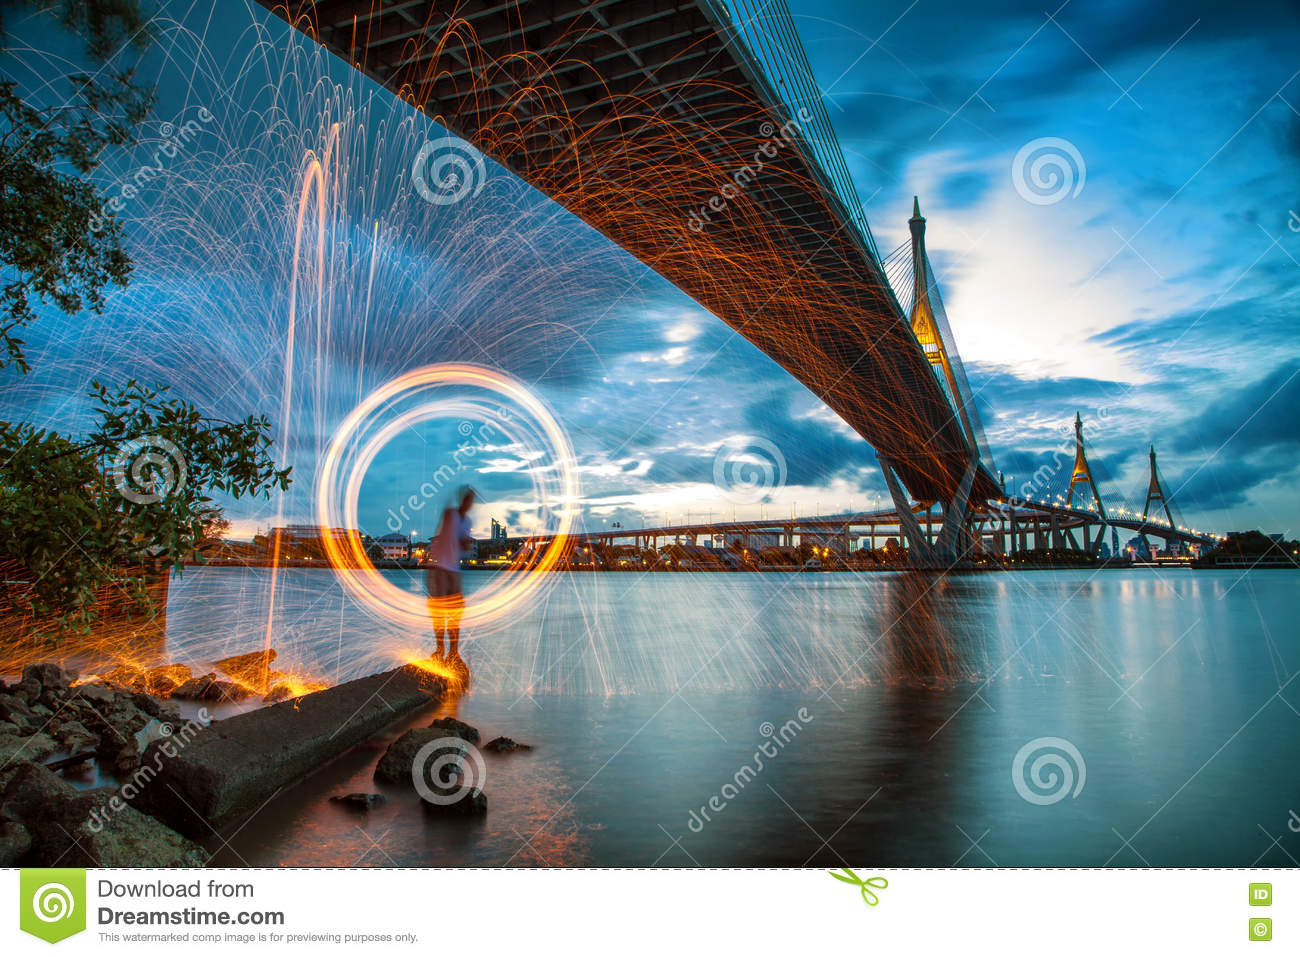 Hot Un Stock >> Hot Golden Sparks Flying From Man Spinning Burning Steel Wool Un